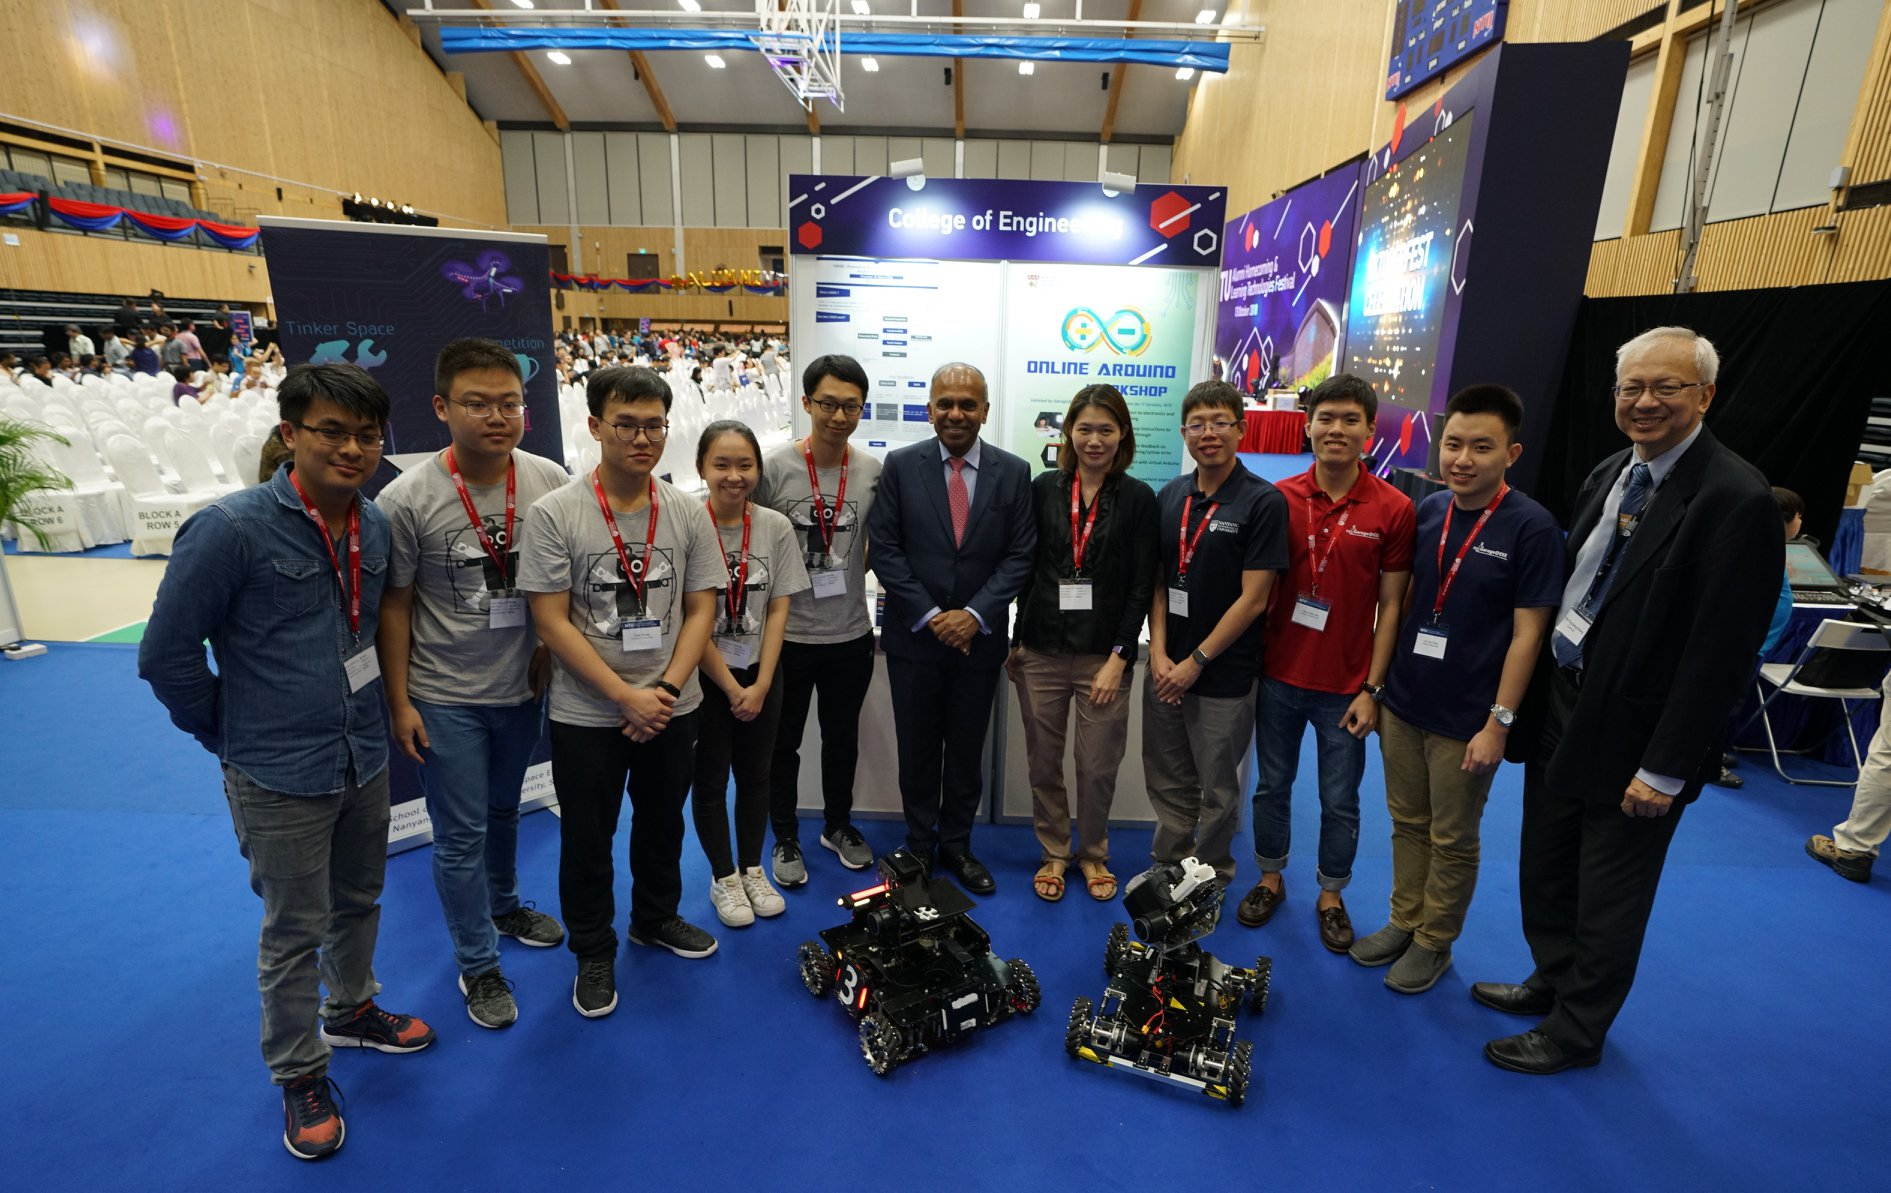 NTU President Professor Subra Suresh with students at the Learning Technologies Festival. Photo courtesy: NTU